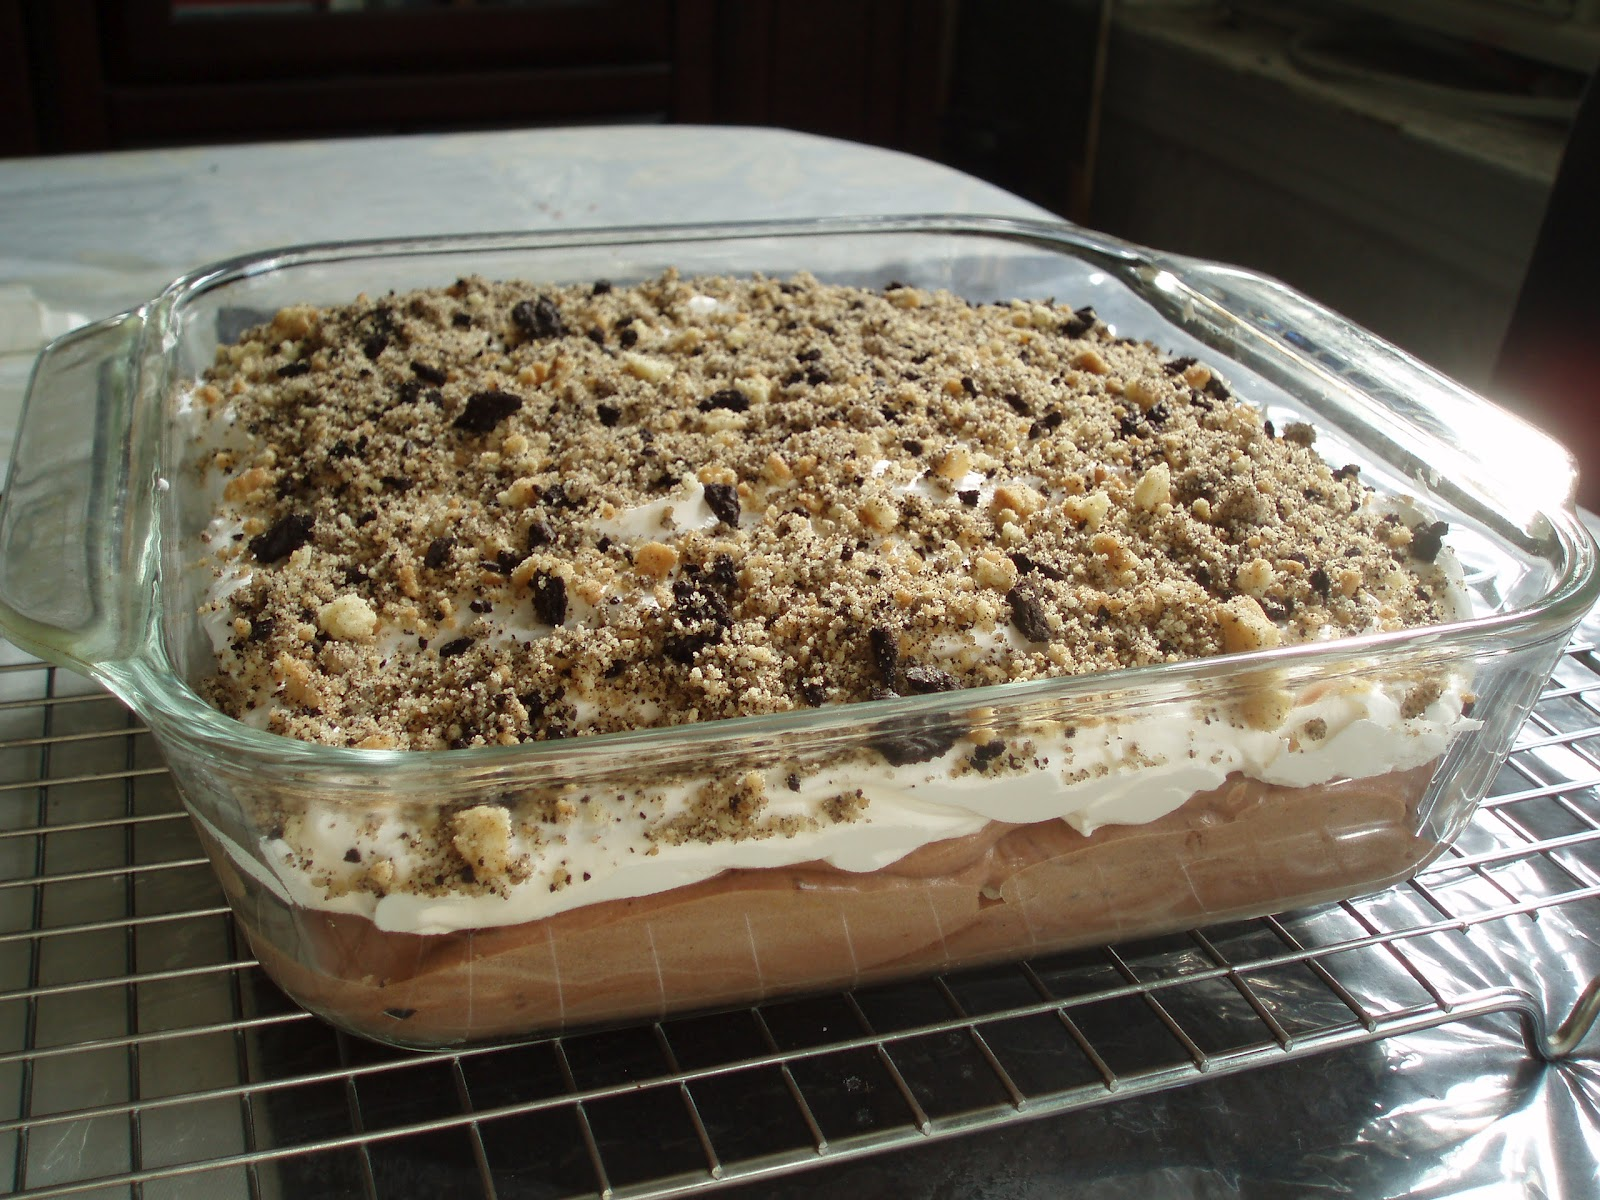 Cake With Chocolate Pudding Layer : Open Mouth Insert Food: Layered Chocolate Banana Pudding Cake